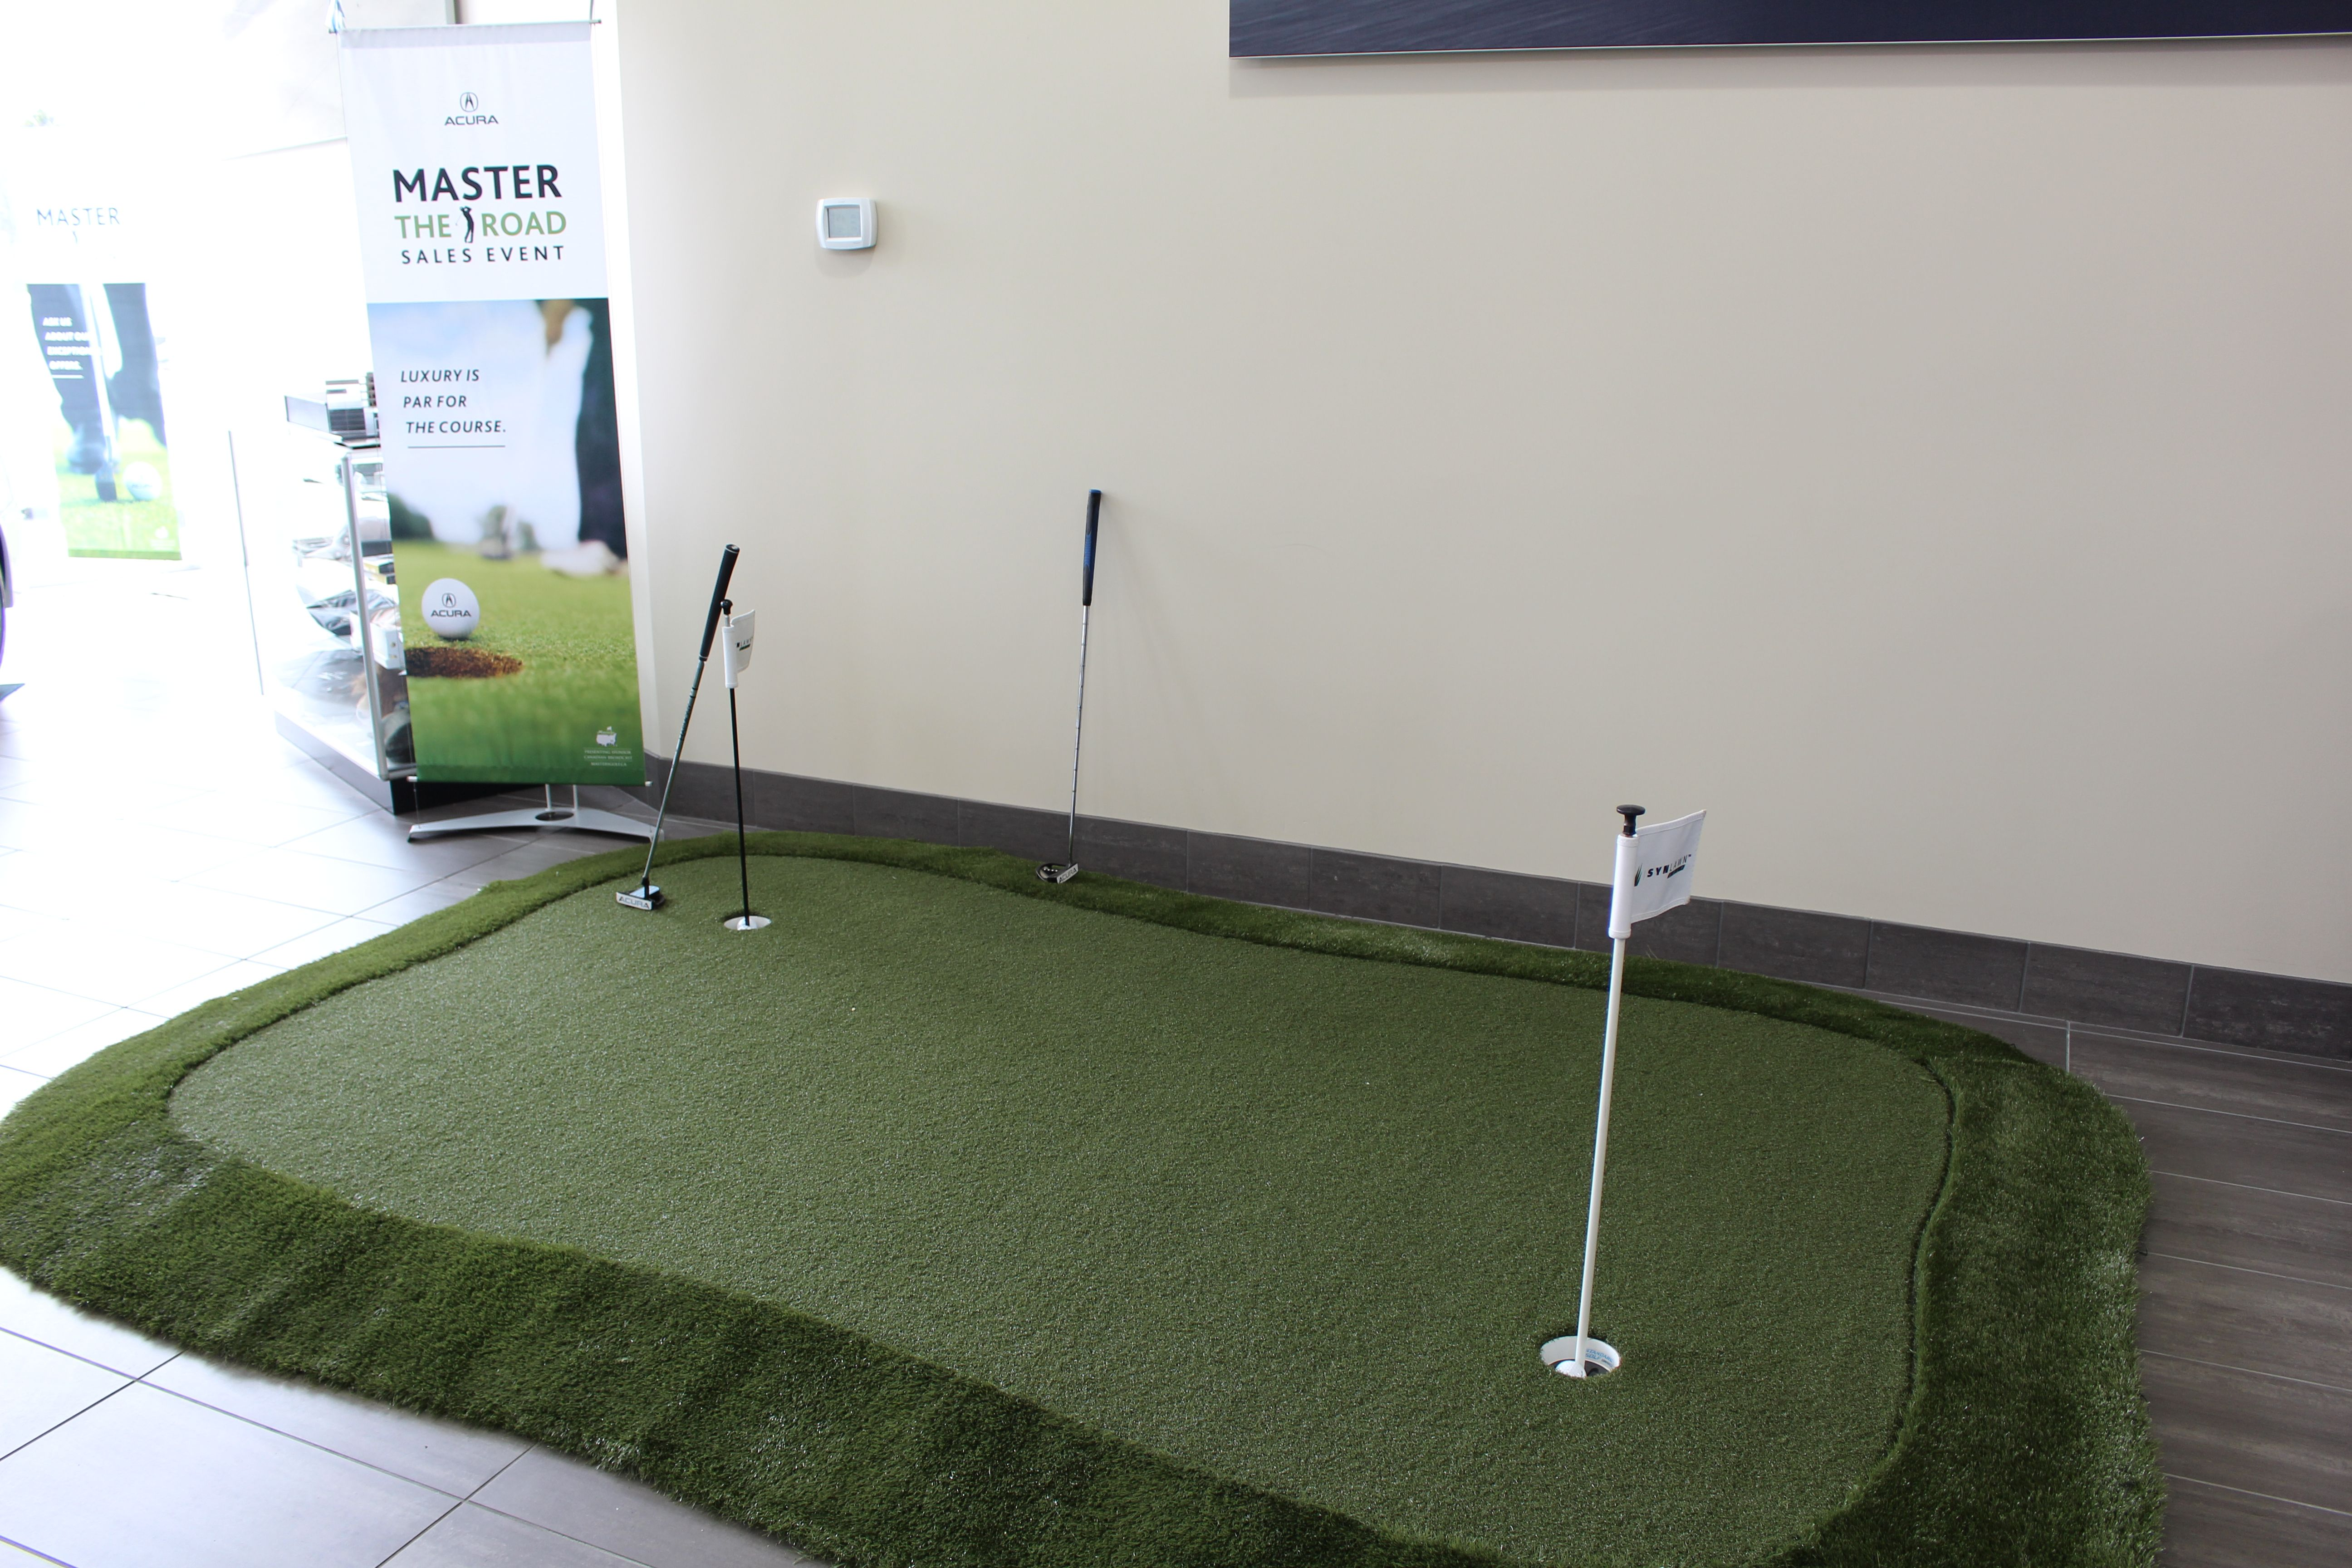 Summer's coming, come on in and practice your putting skills! #Honda #Putting #Golf